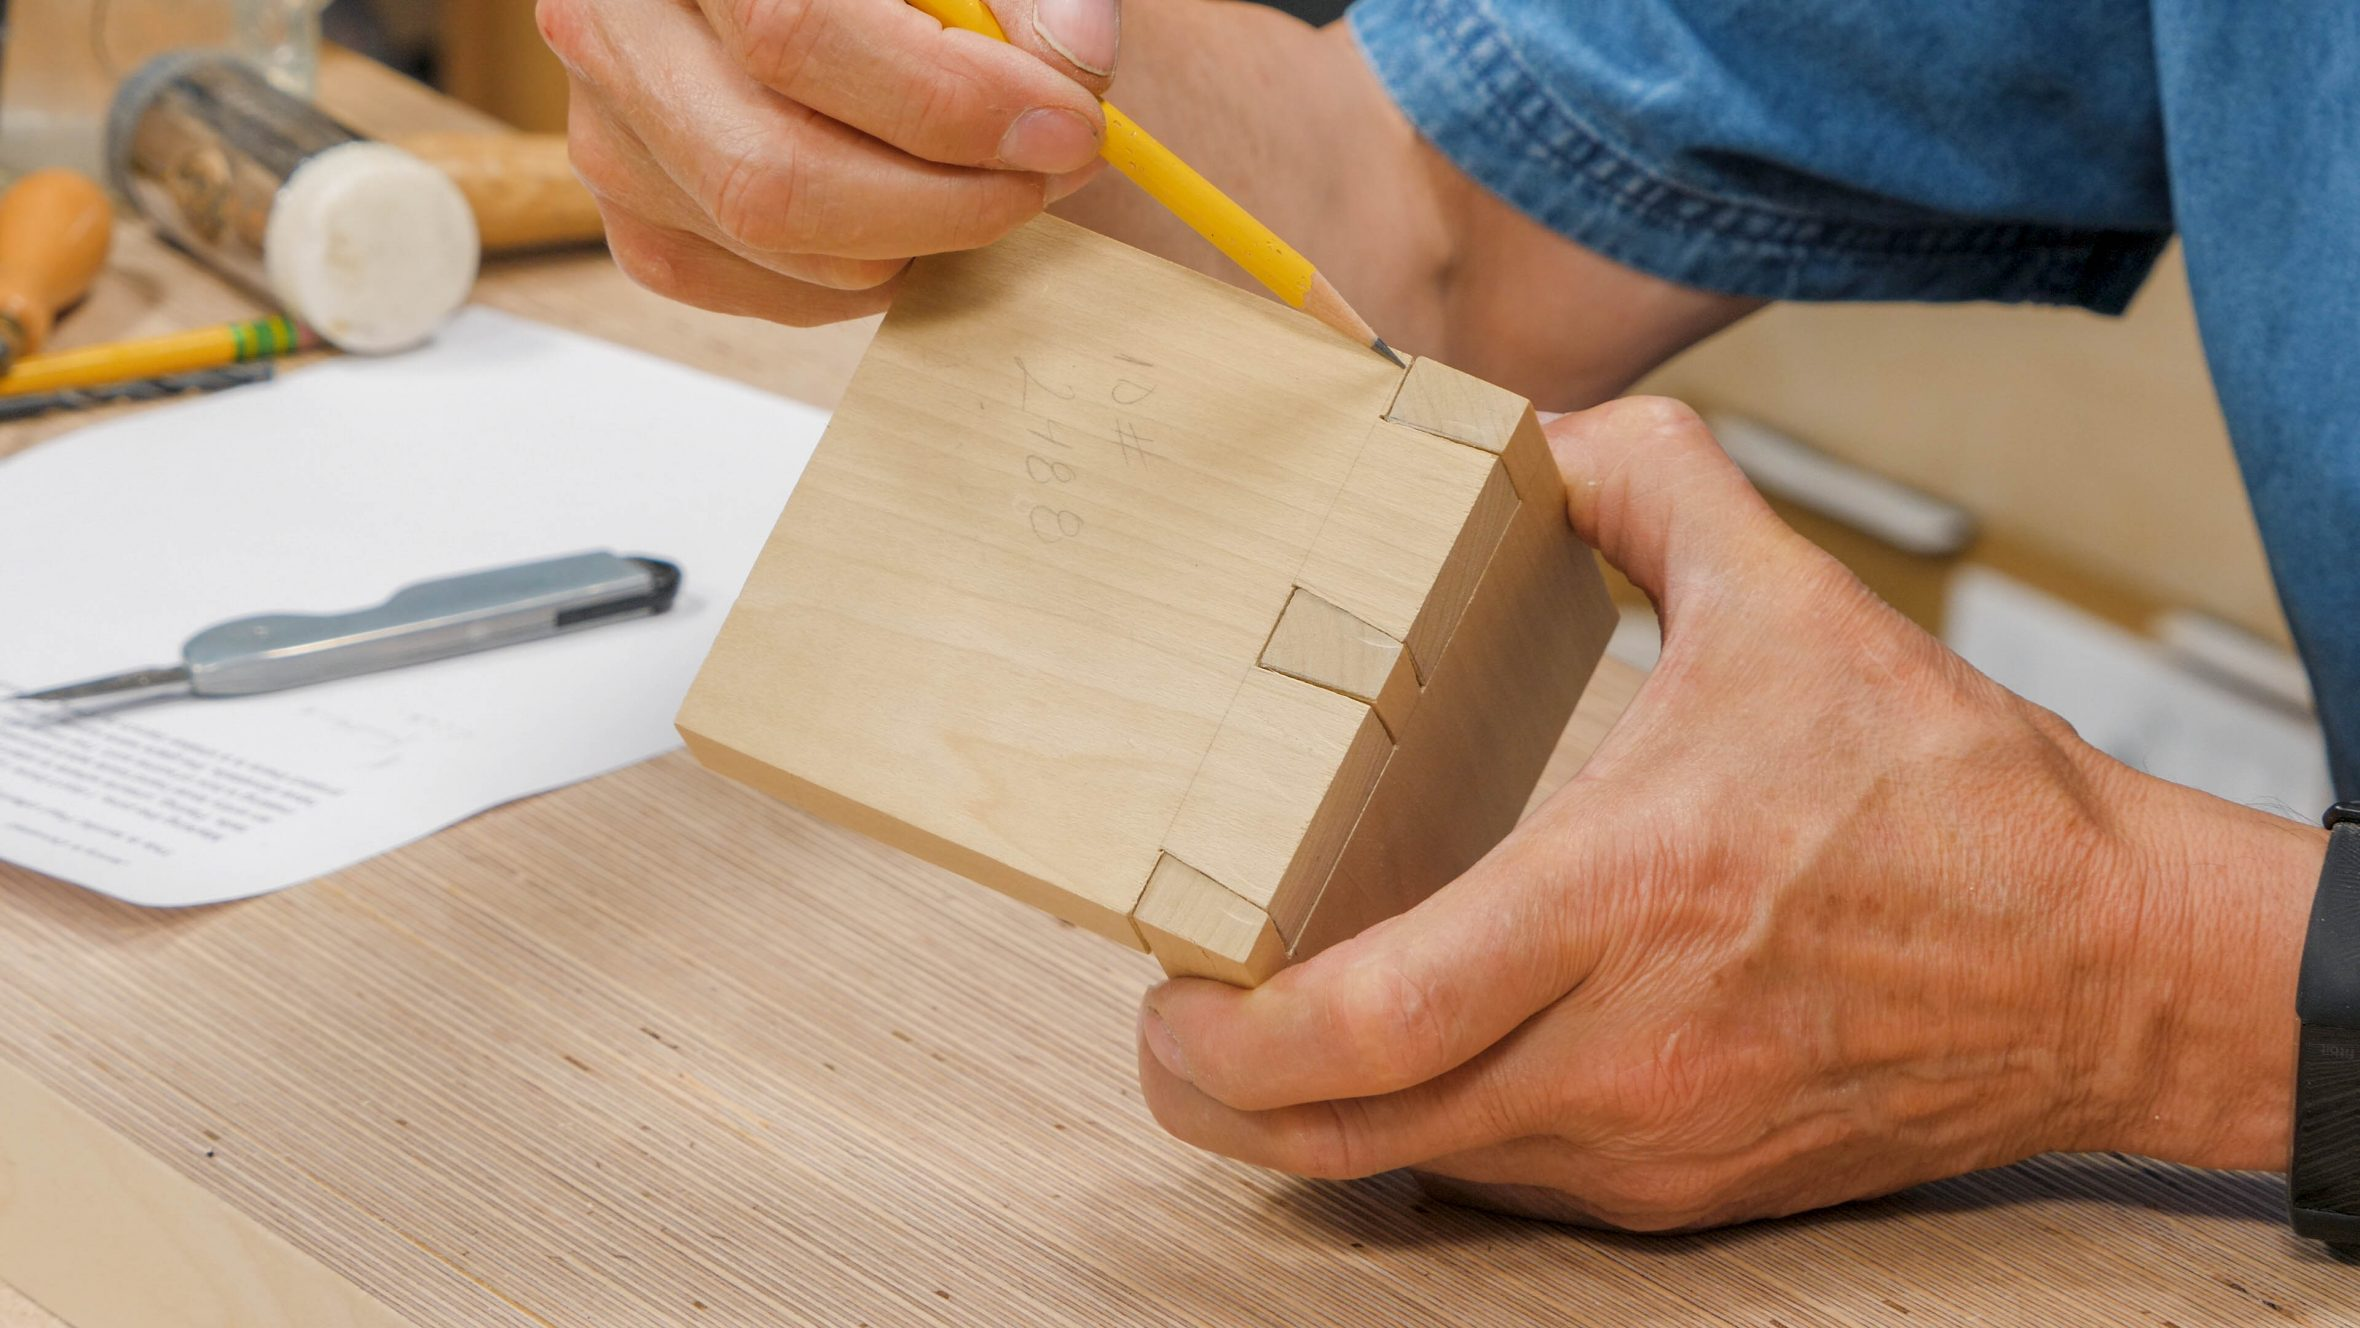 Pointing out the gaps in a dovetail joint using the point of a pencil.